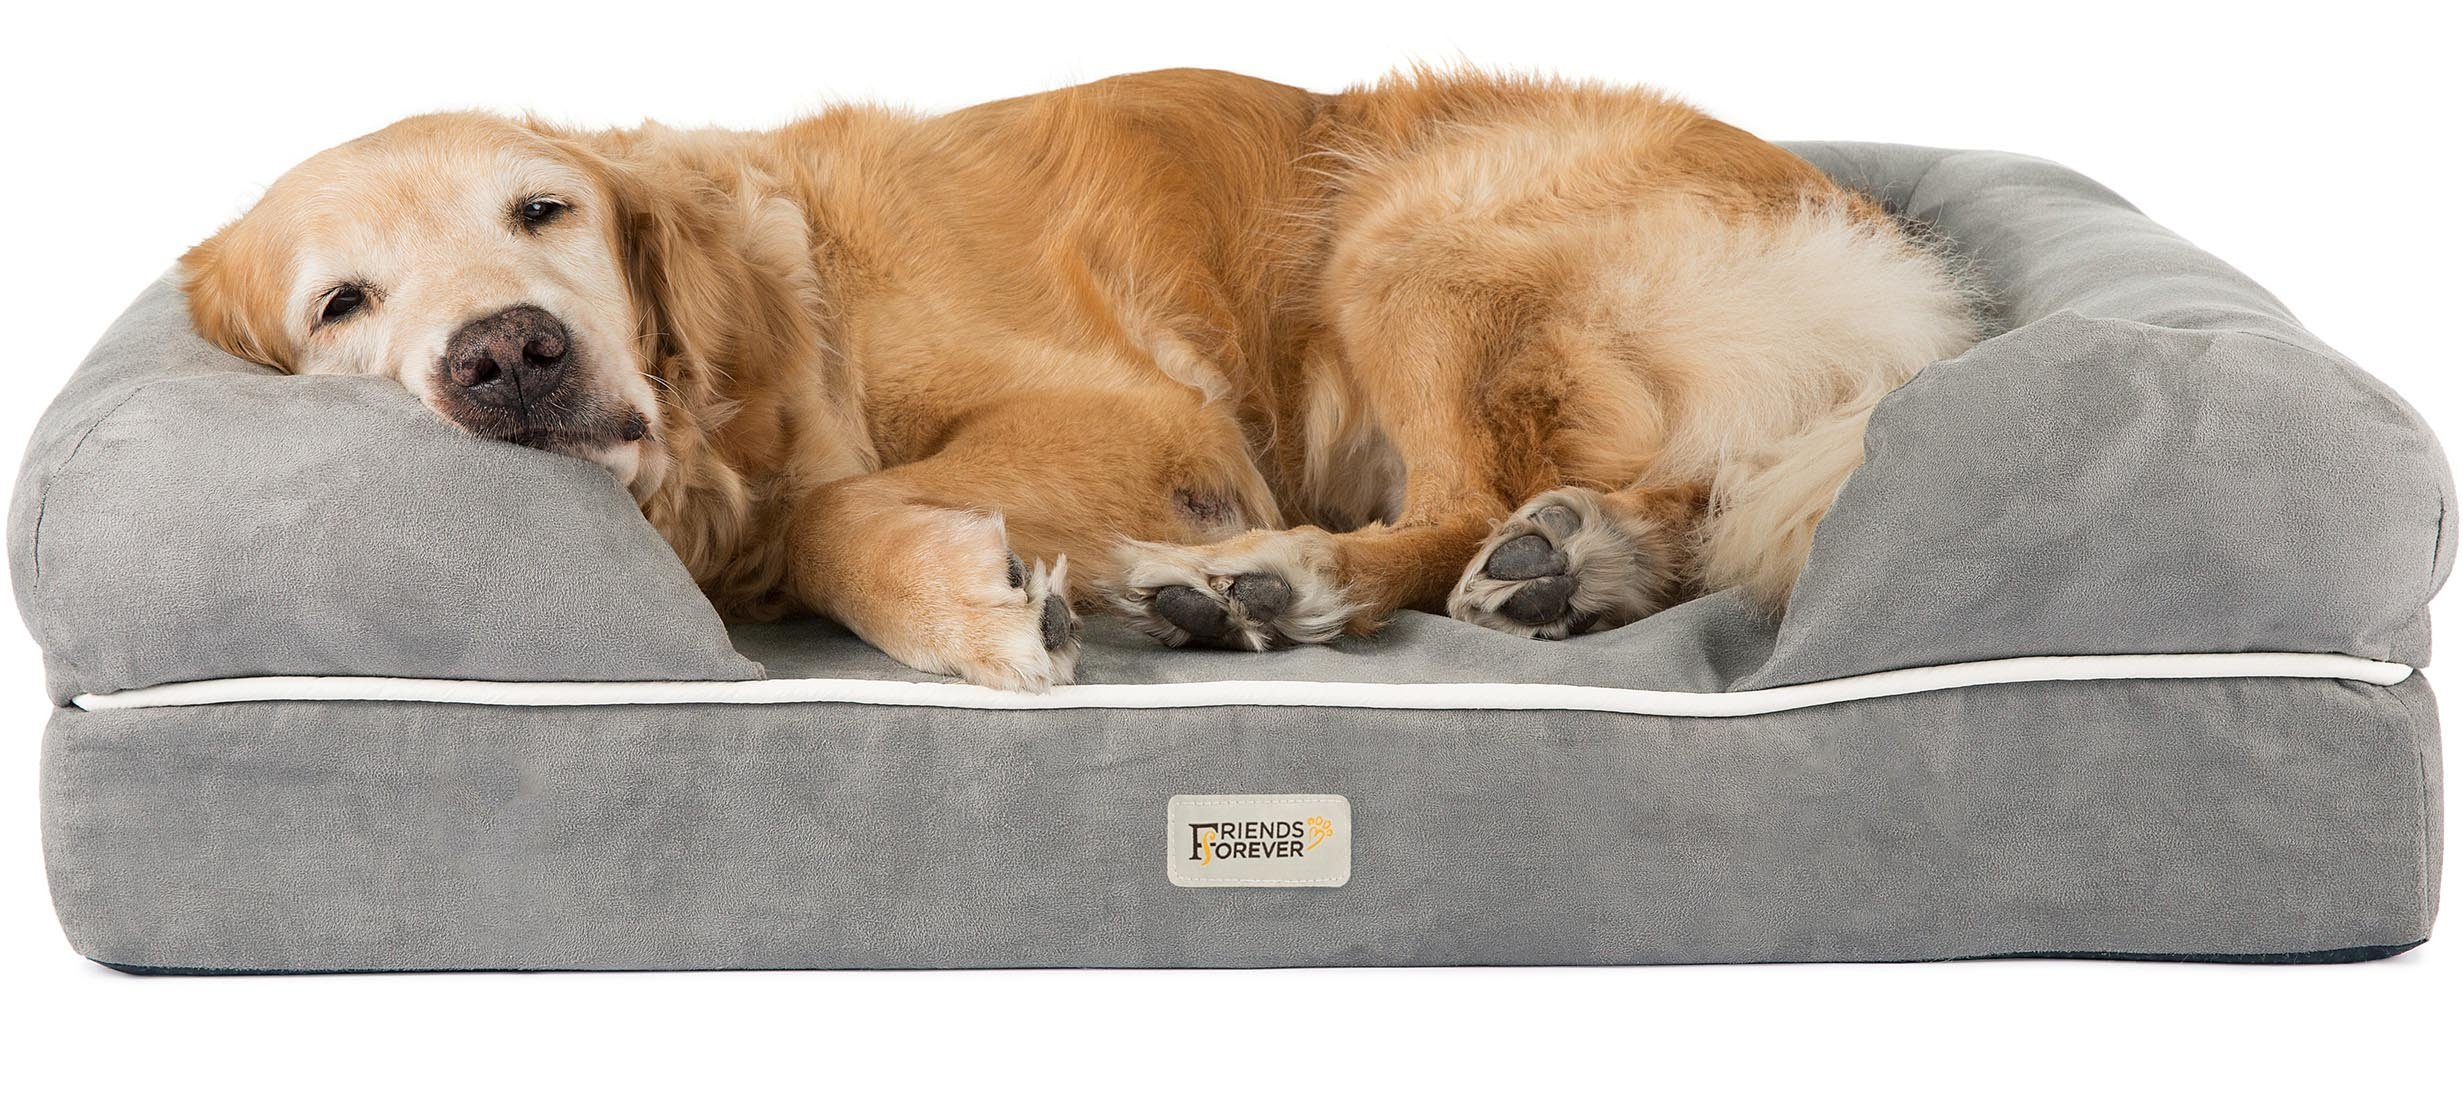 Orthopedic Dog Bed Lounge Sofa Removable Cover 100% Suede 4″ Mattress Memory-Foam Premium Prestige Edition 36″ x 28″ x 9″ Pewter Grey Large